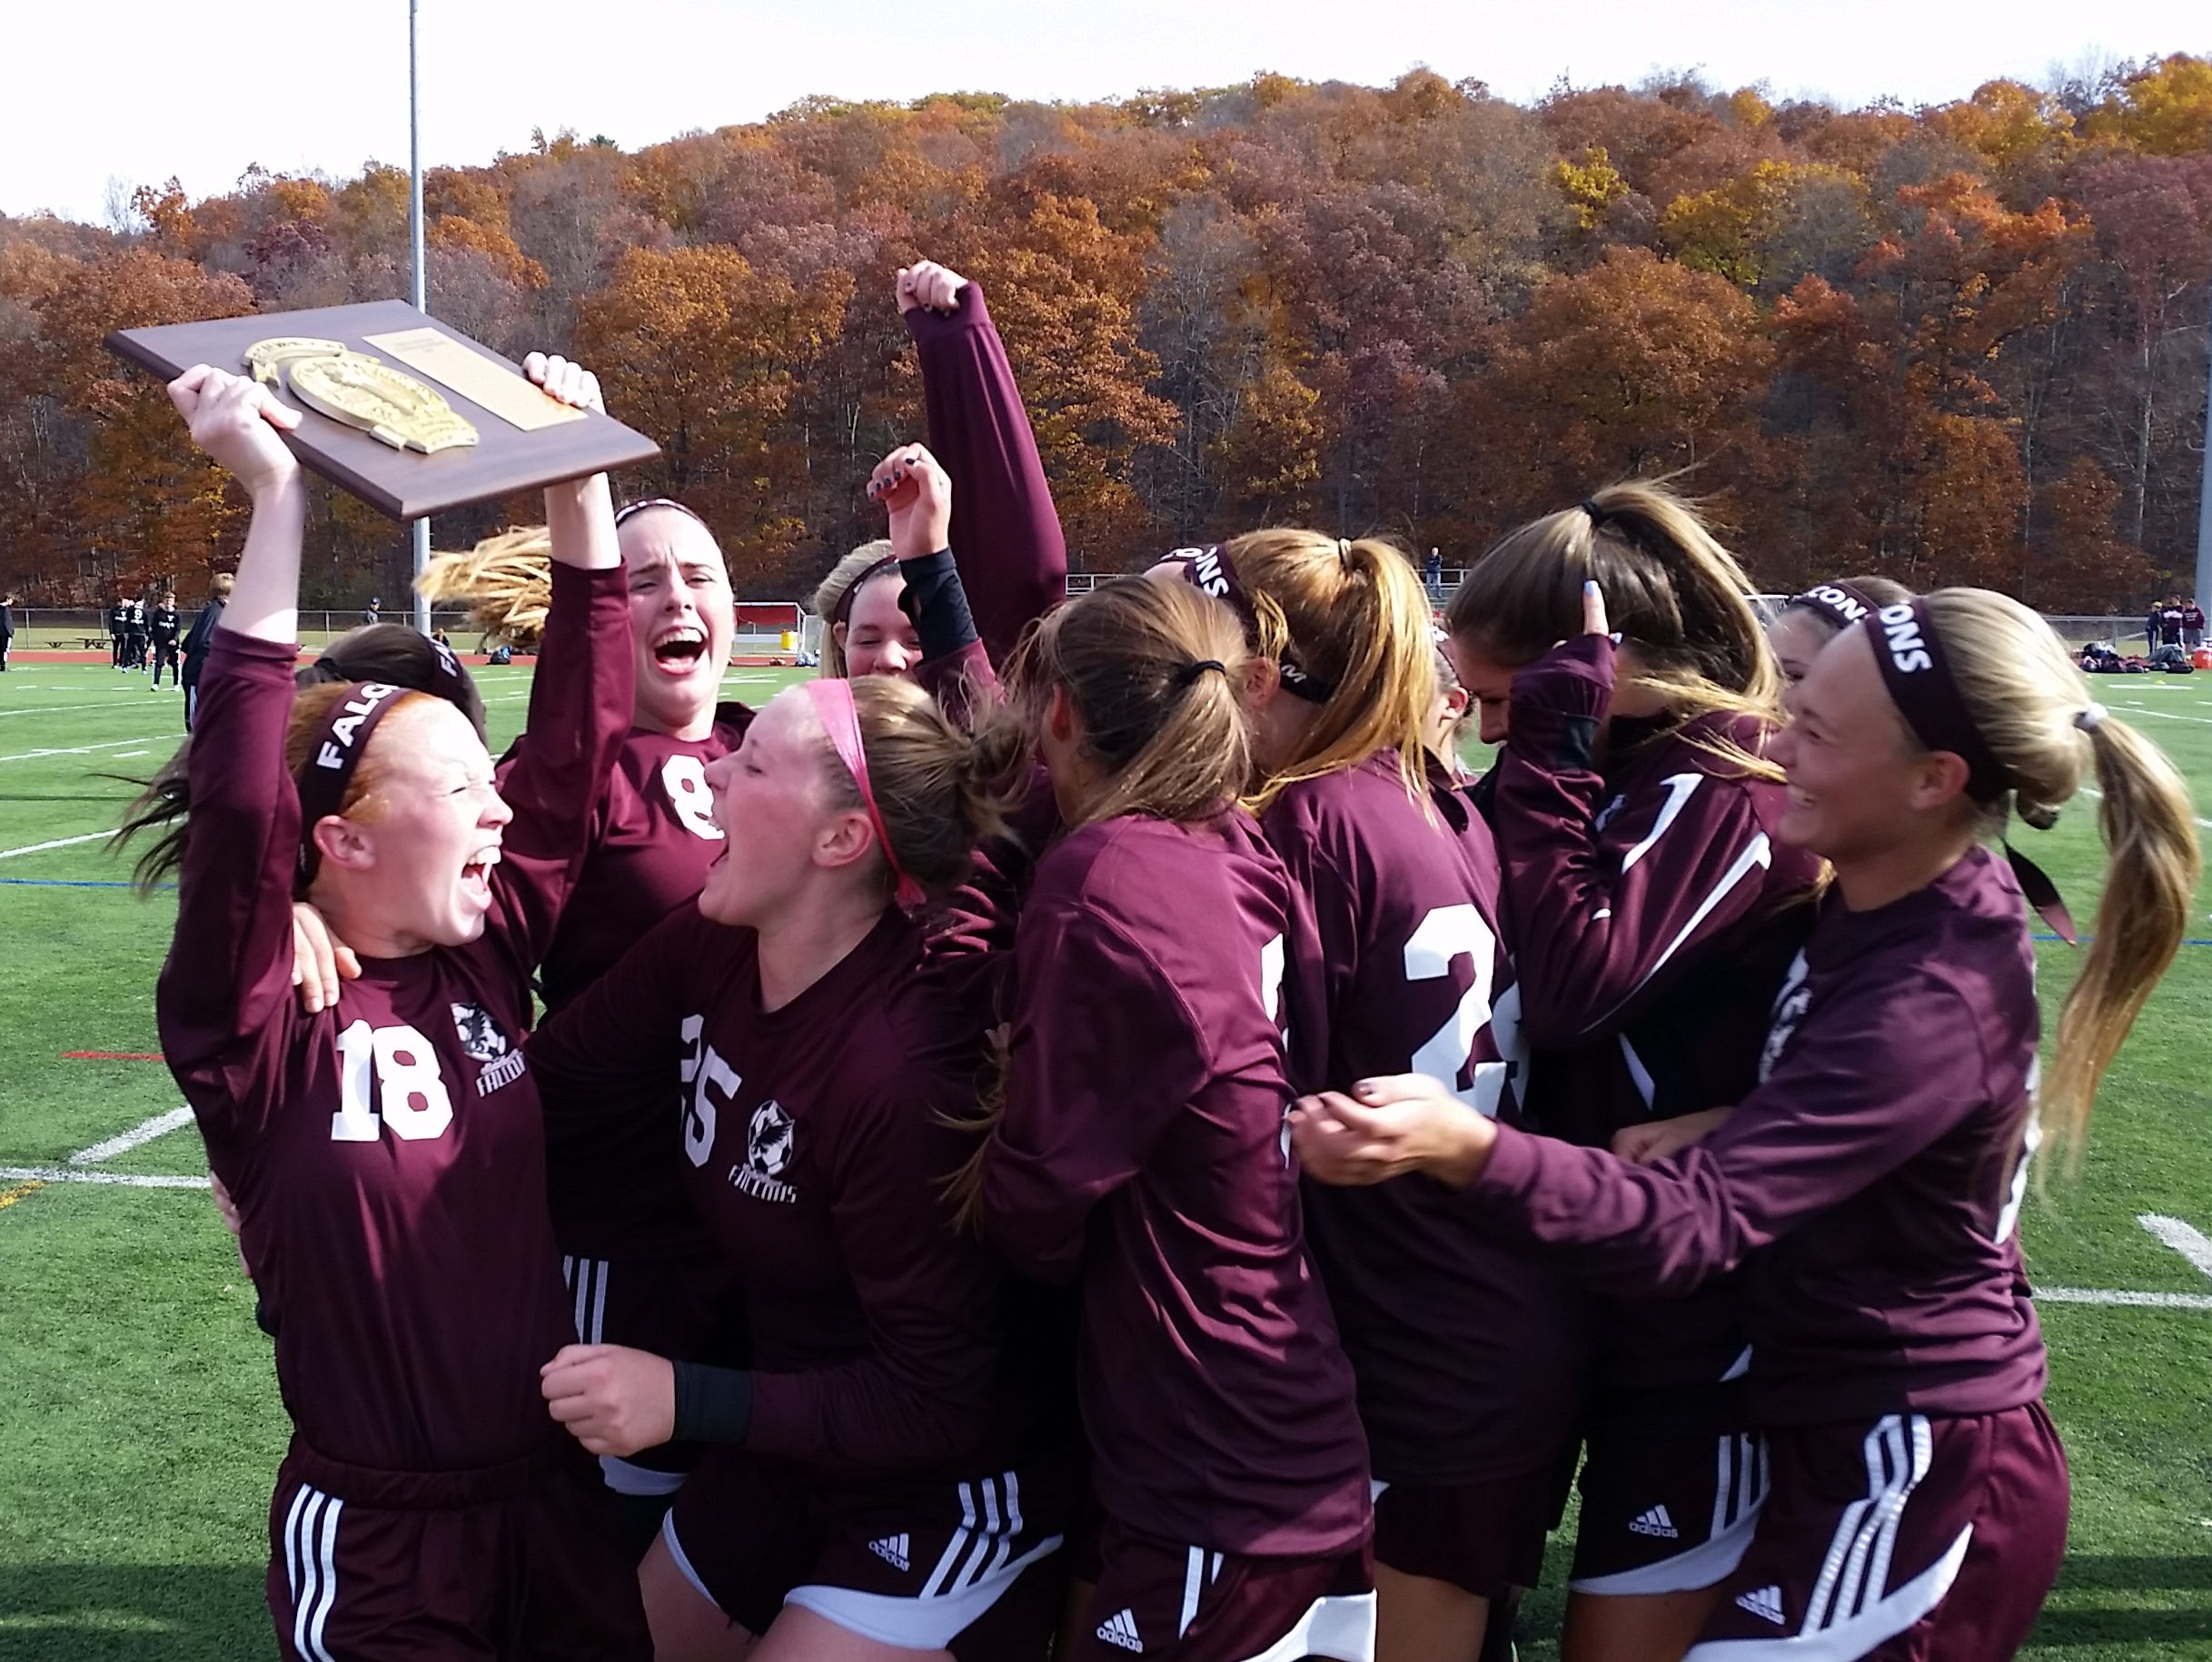 Albertus Magnus celebrates after beating Irvington 1-0 to win the Section 1, Class B title at Arlington High School on Saturday, October 31st, 2015.